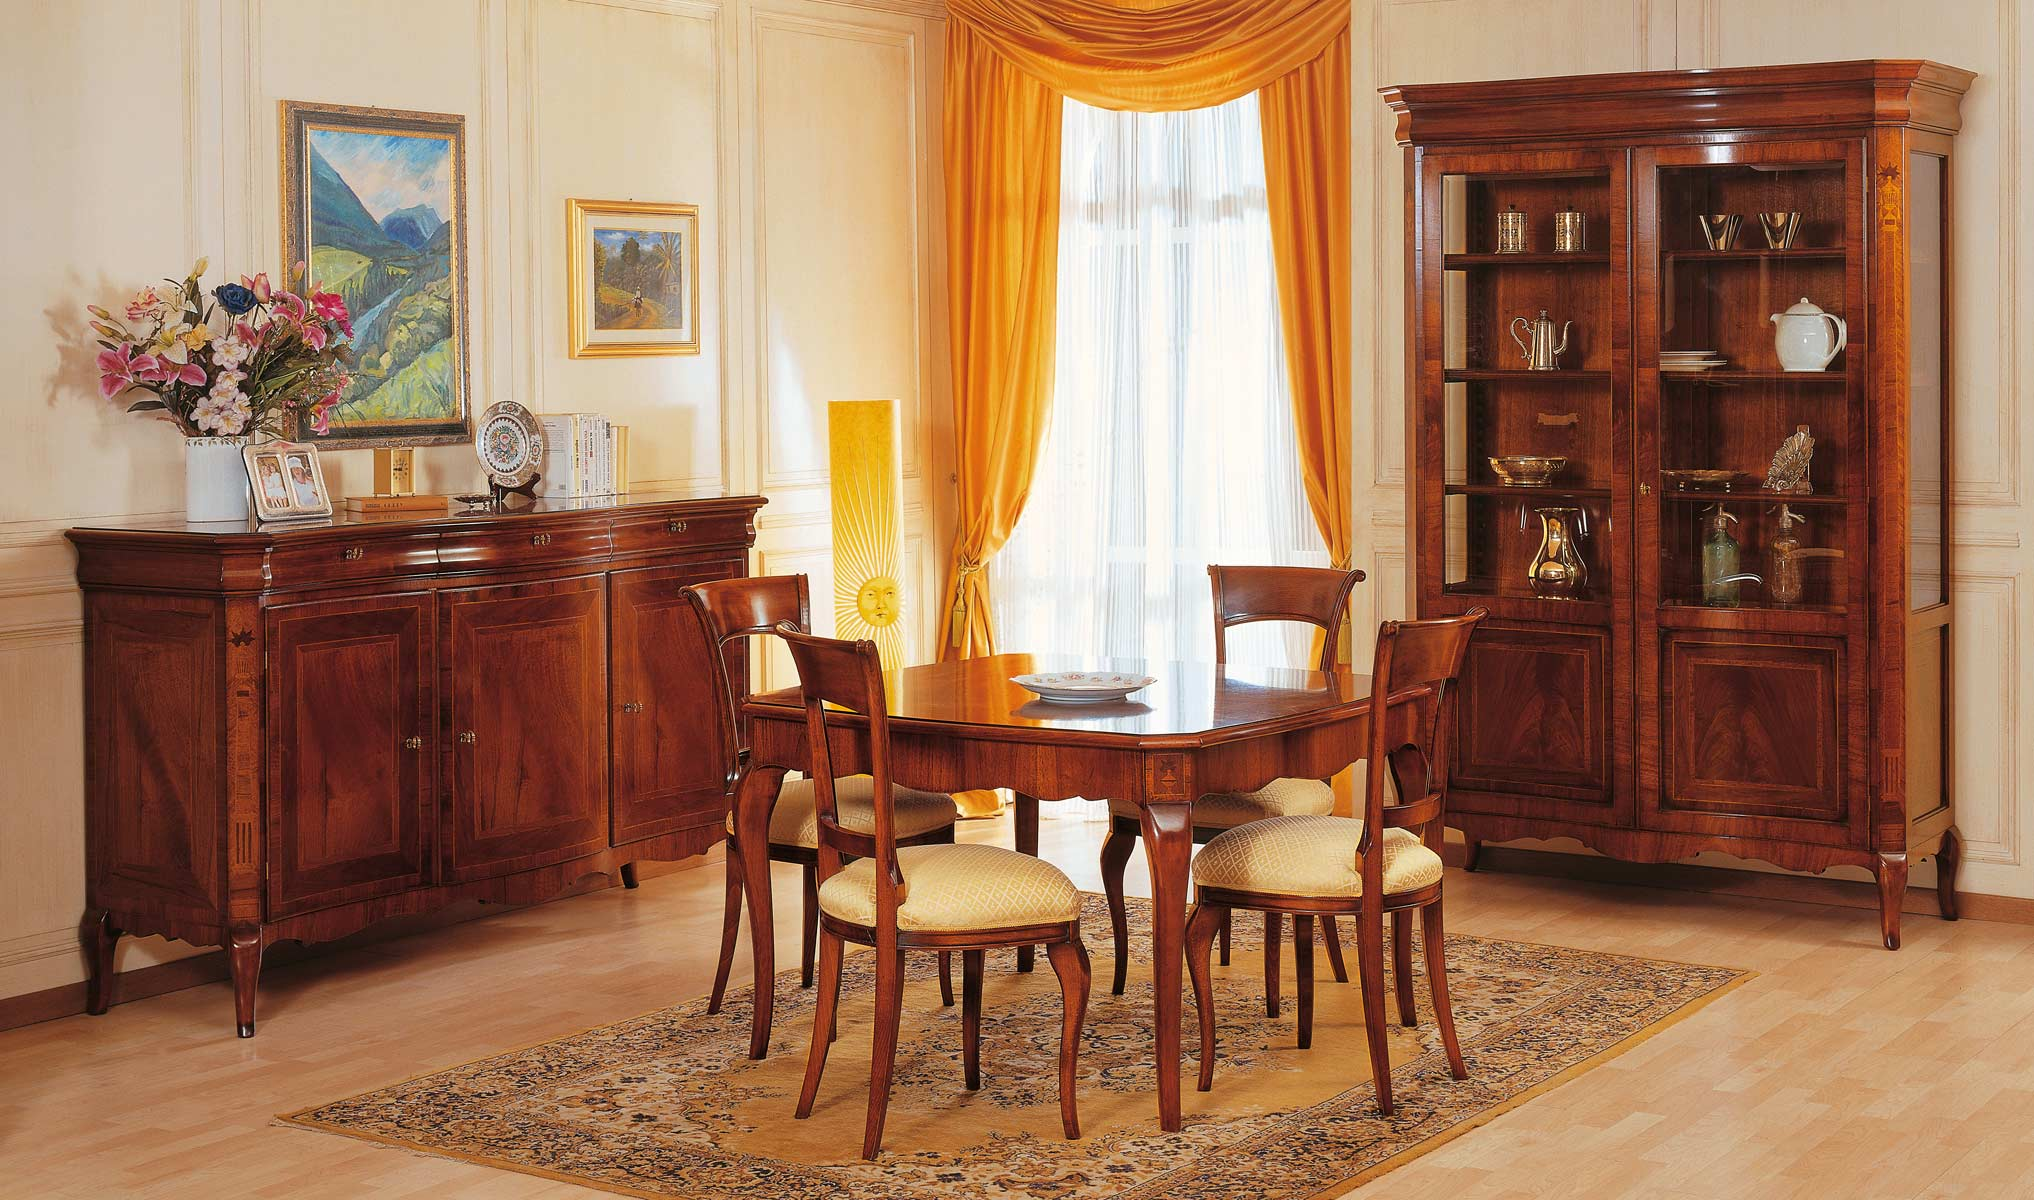 Dining room in 19th century french style vimercati for Dining room in french